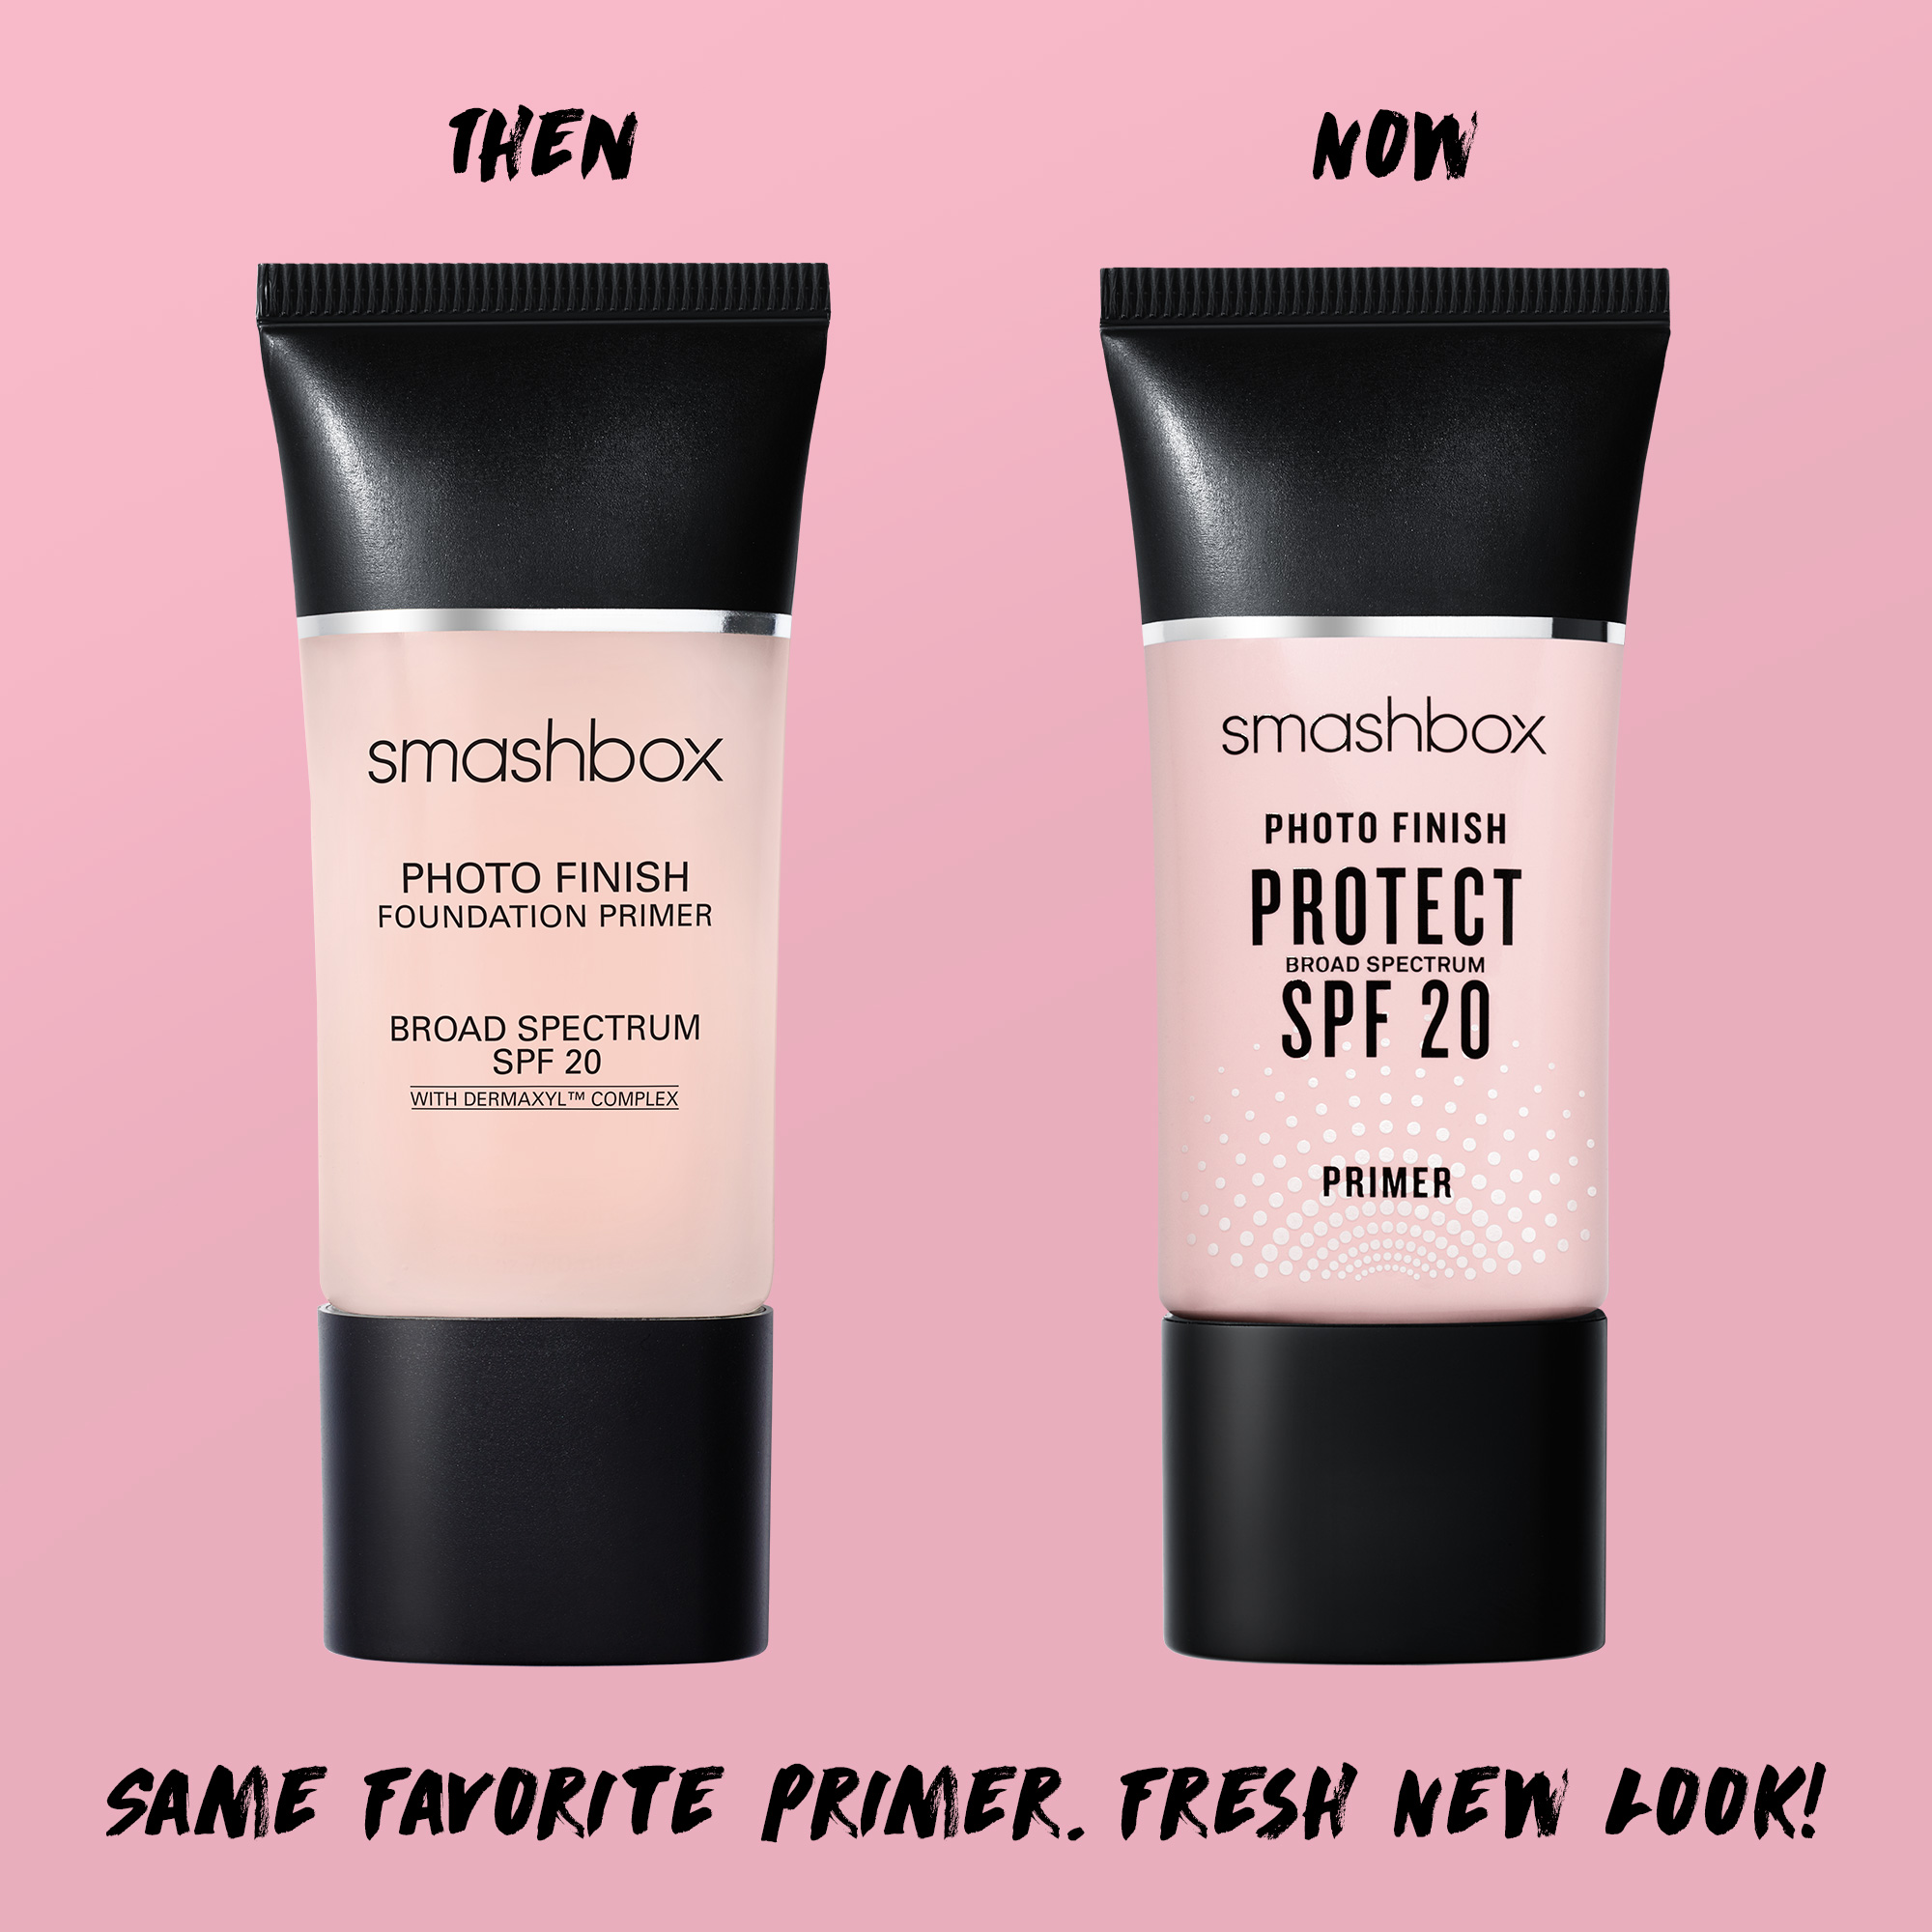 Photo Finish Foundation Primer Broad Spectrum SPF 20 with Dermaxyl Complex